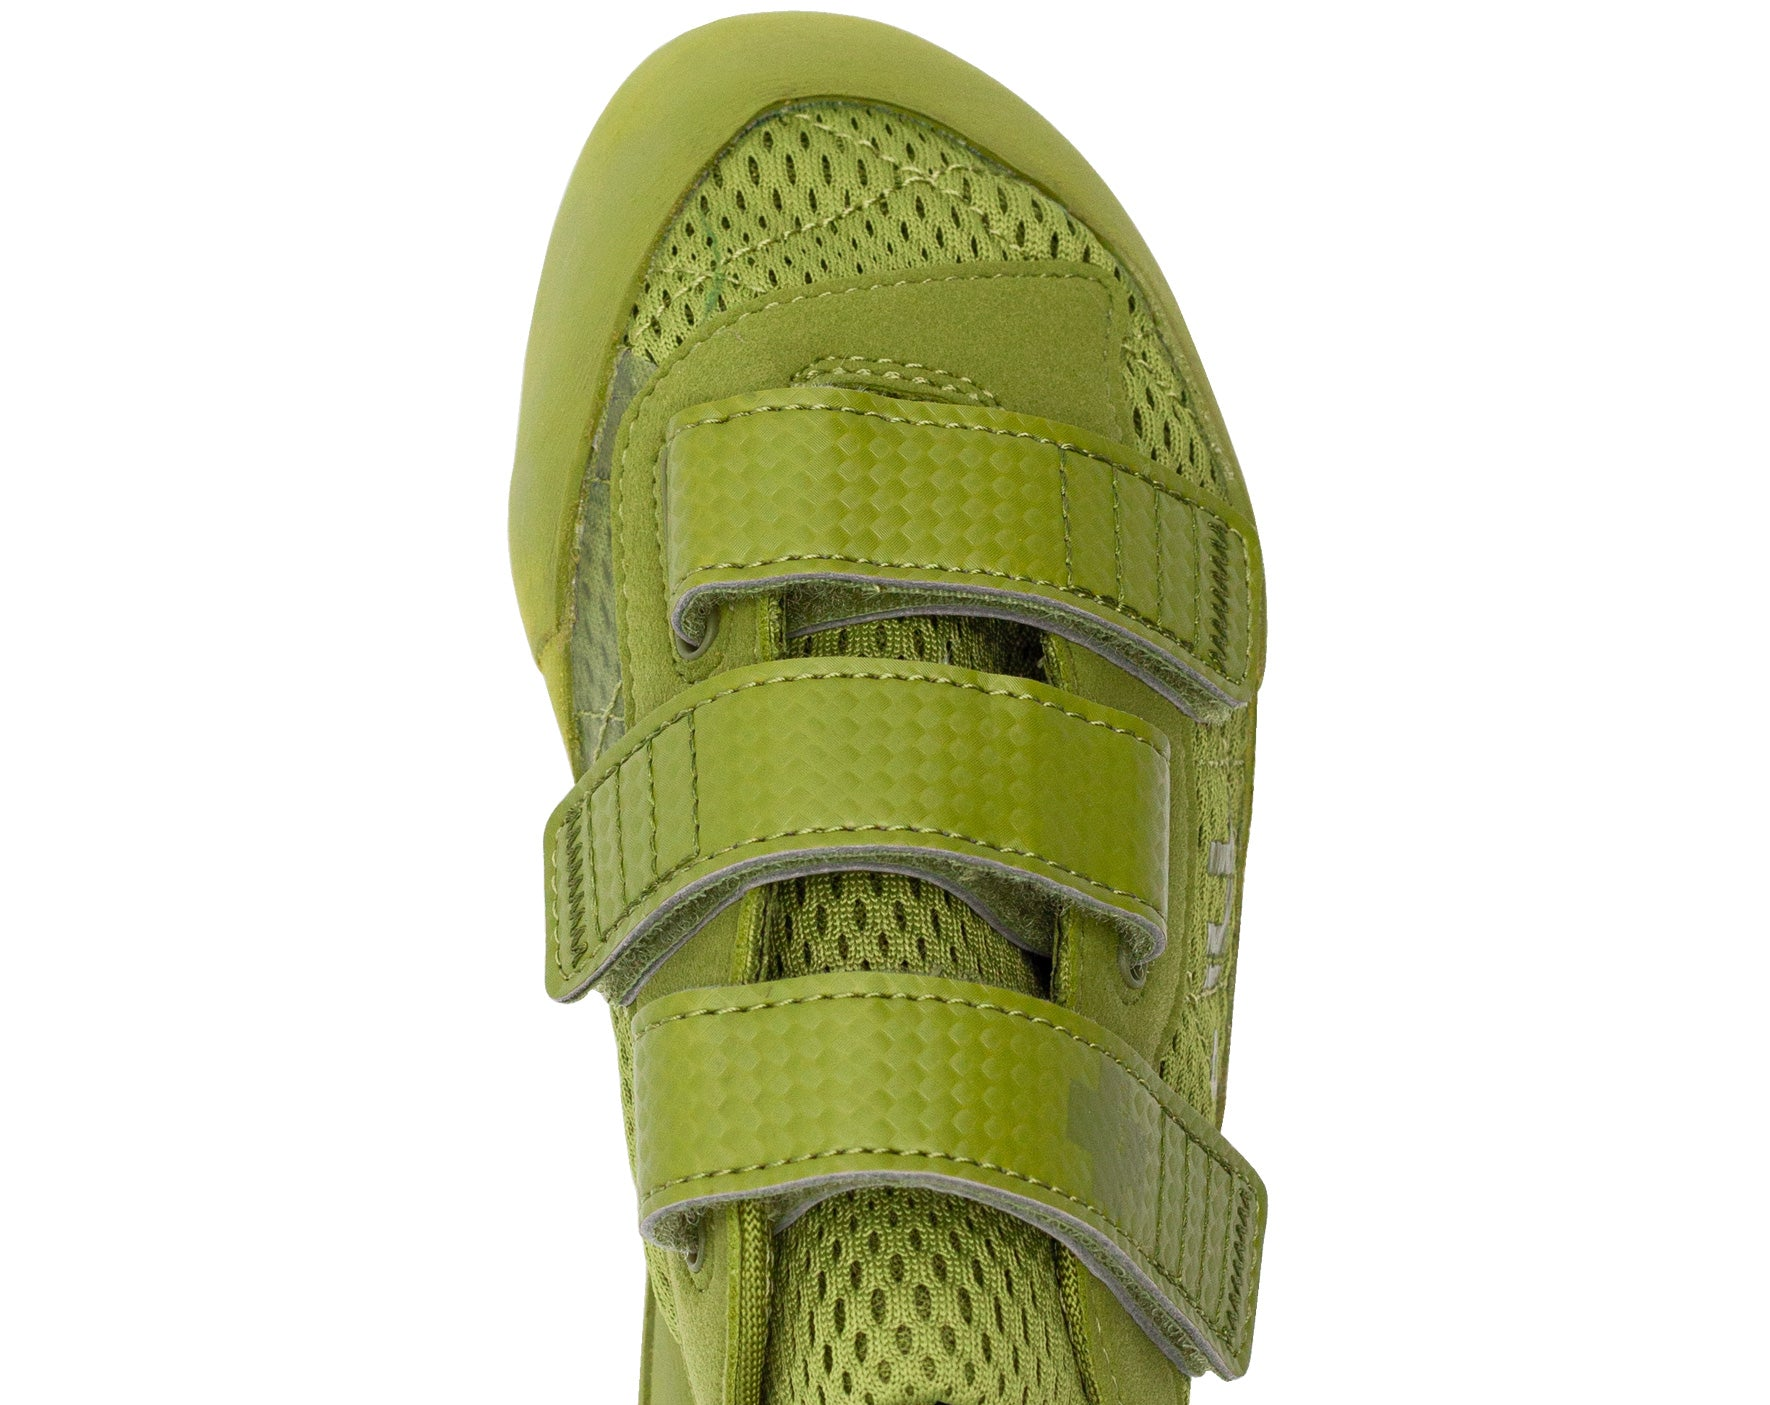 So iLL runner lv in olive Climbing Shoe top product image